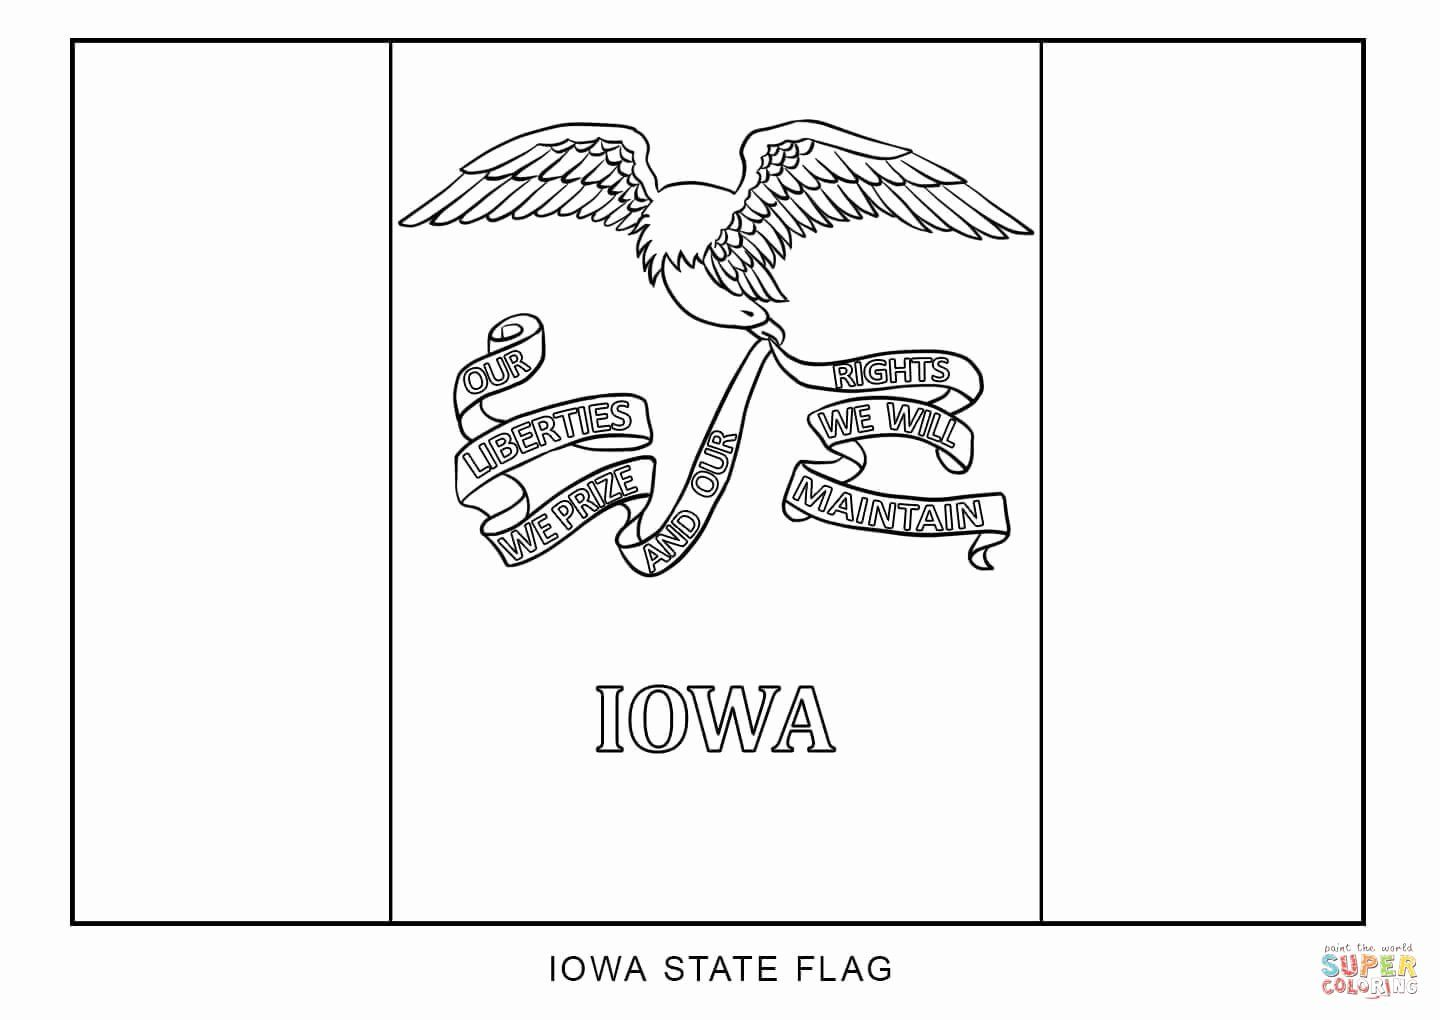 Iowa State Flag Coloring Page In 2020 Flag Coloring Pages